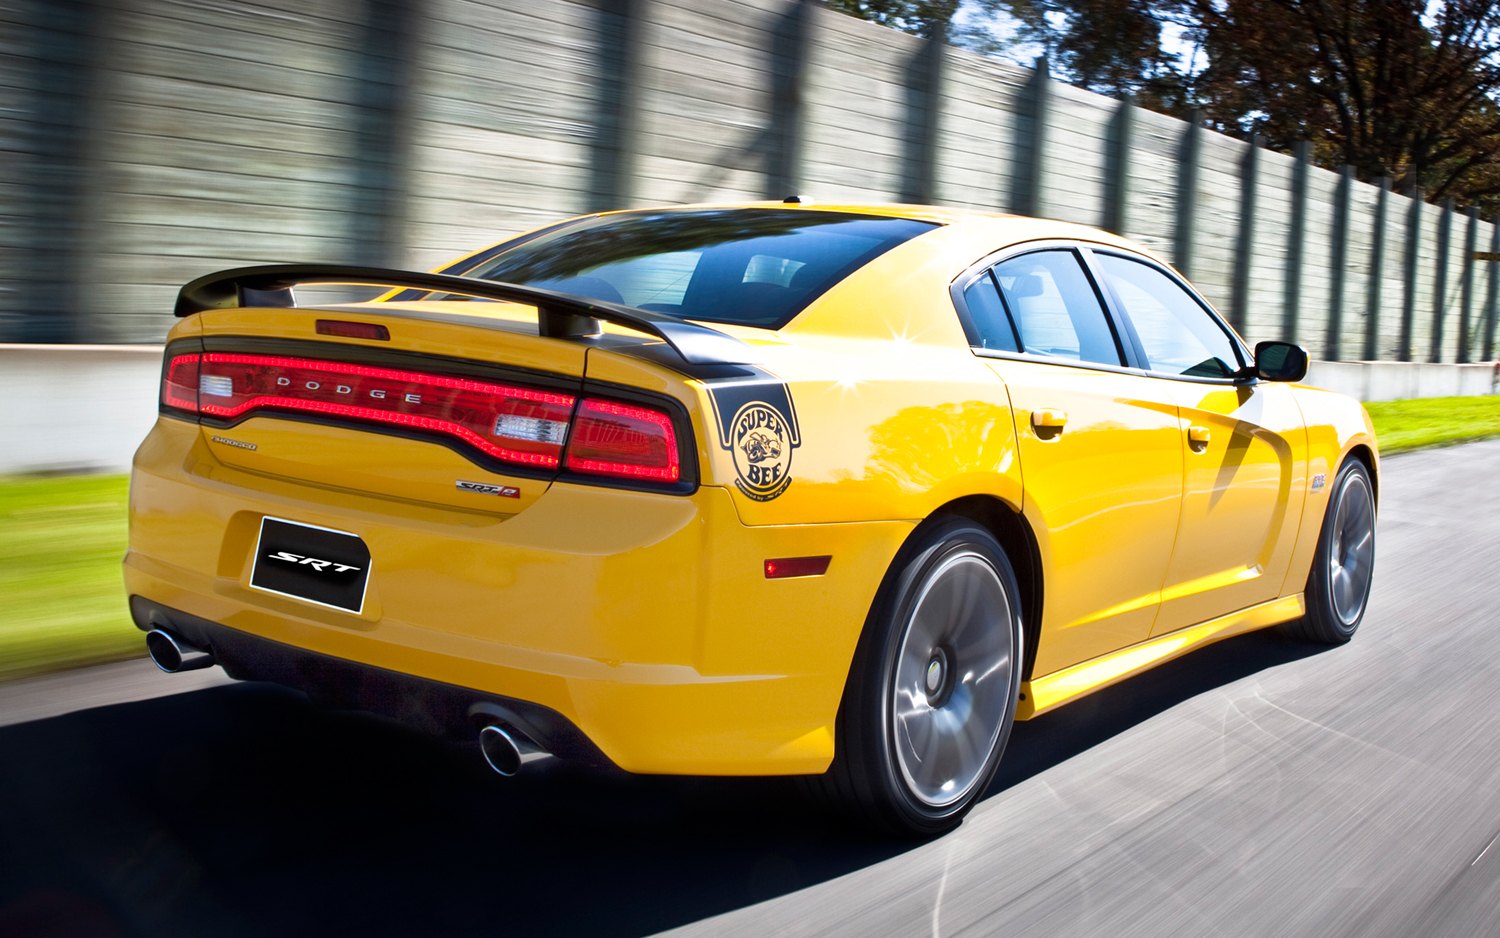 2012 Dodge Charger SRT8 Super Bee Rear Three Quarter Photo 11